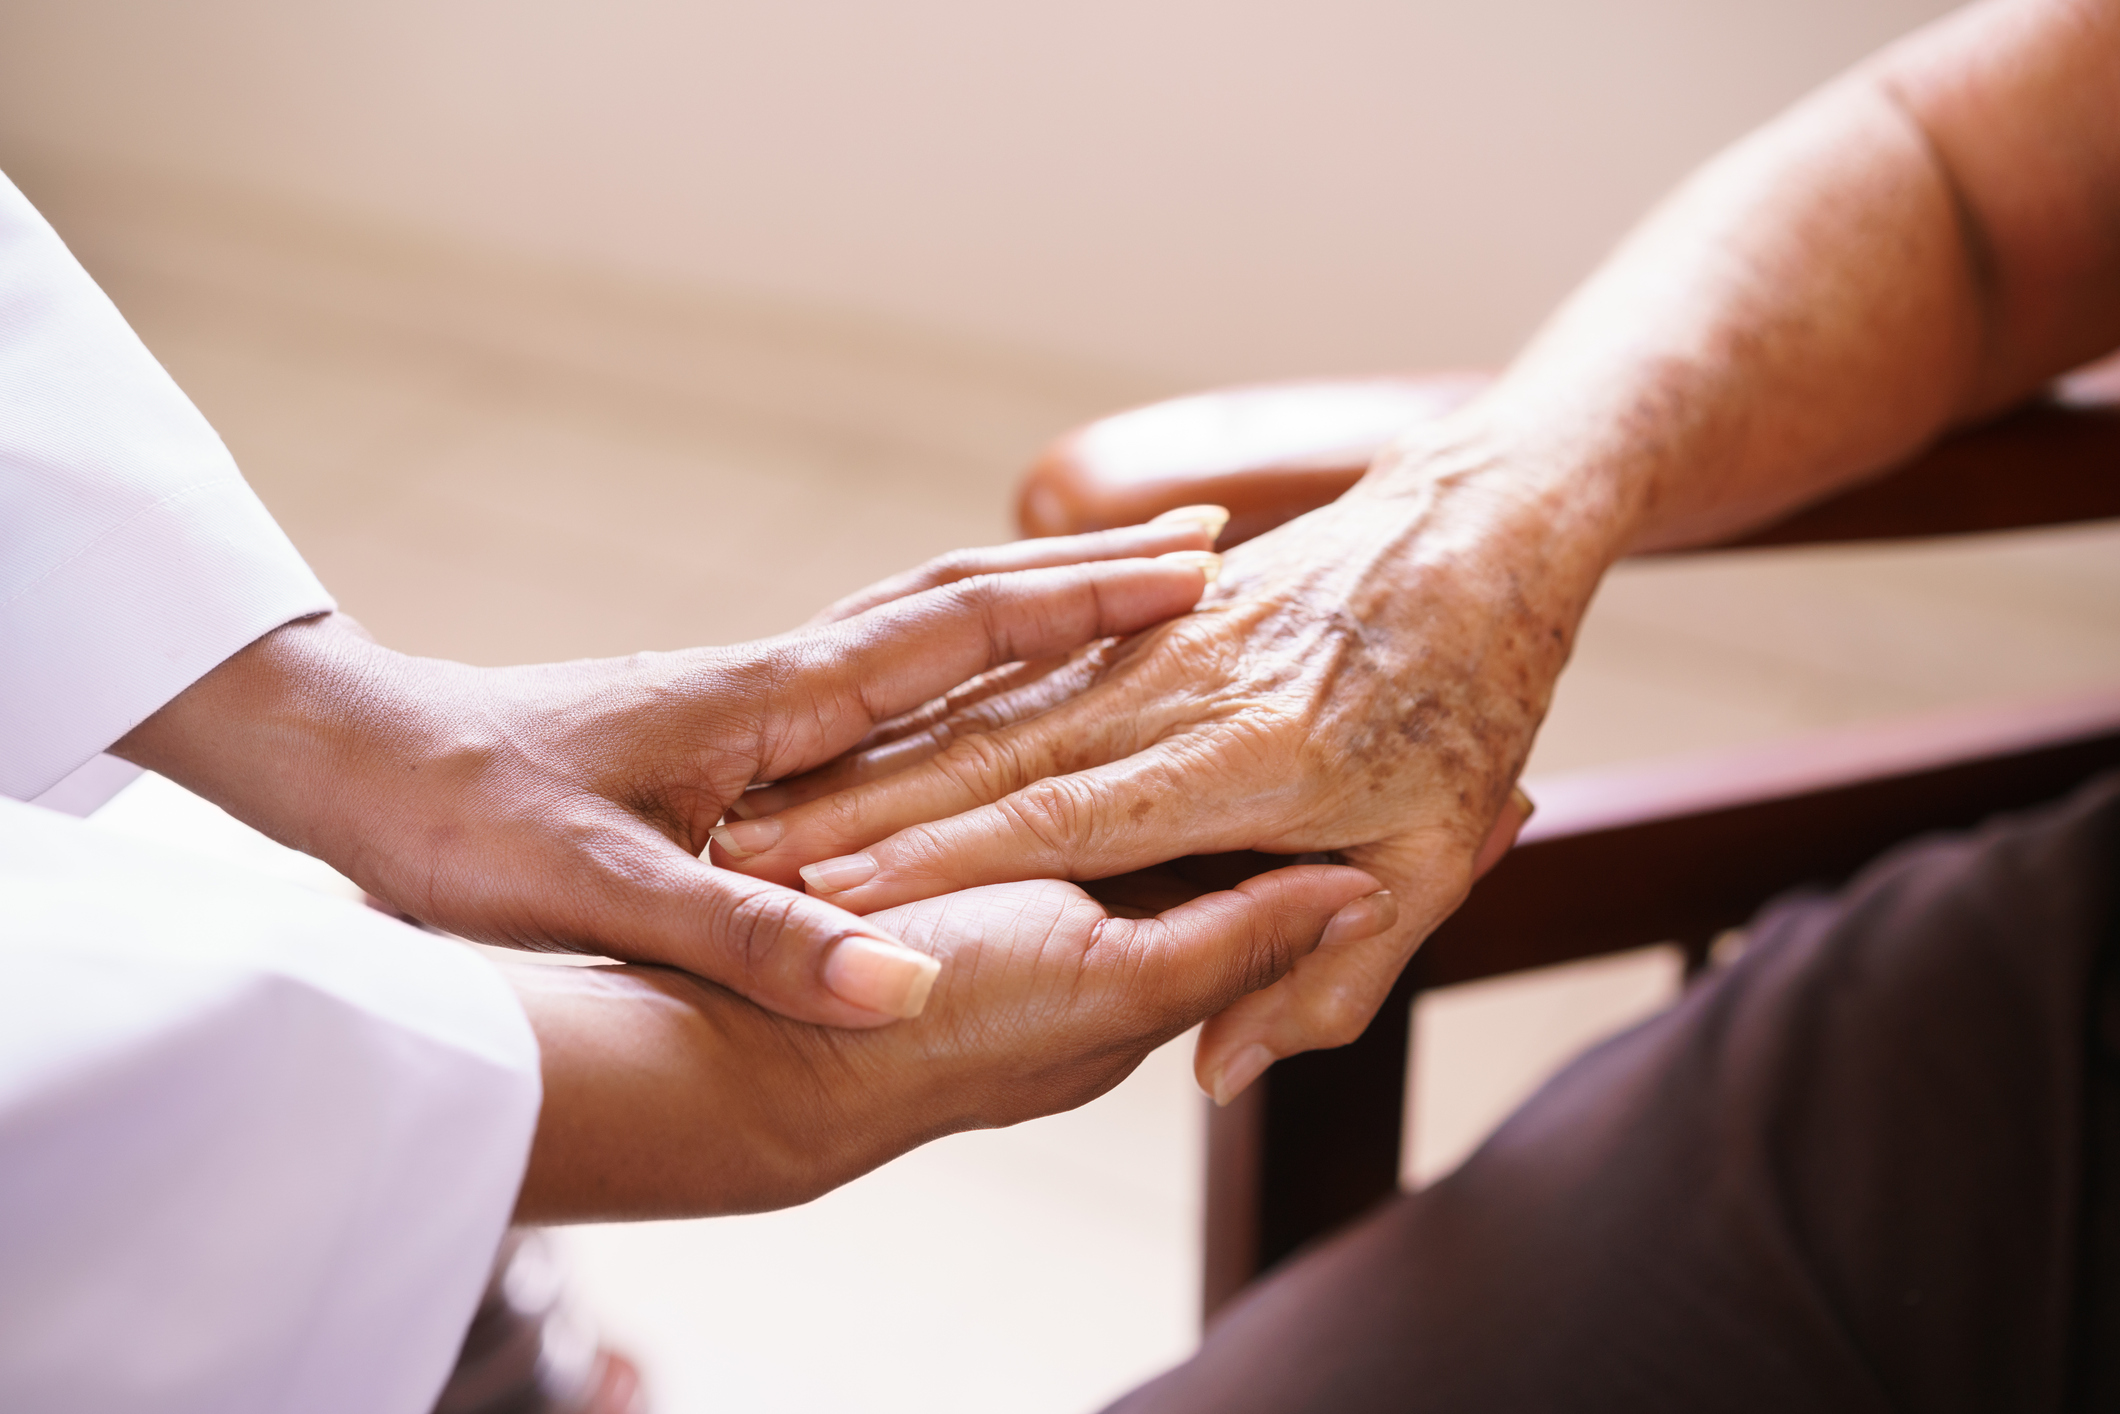 Younger nurse hands hold older person's hand